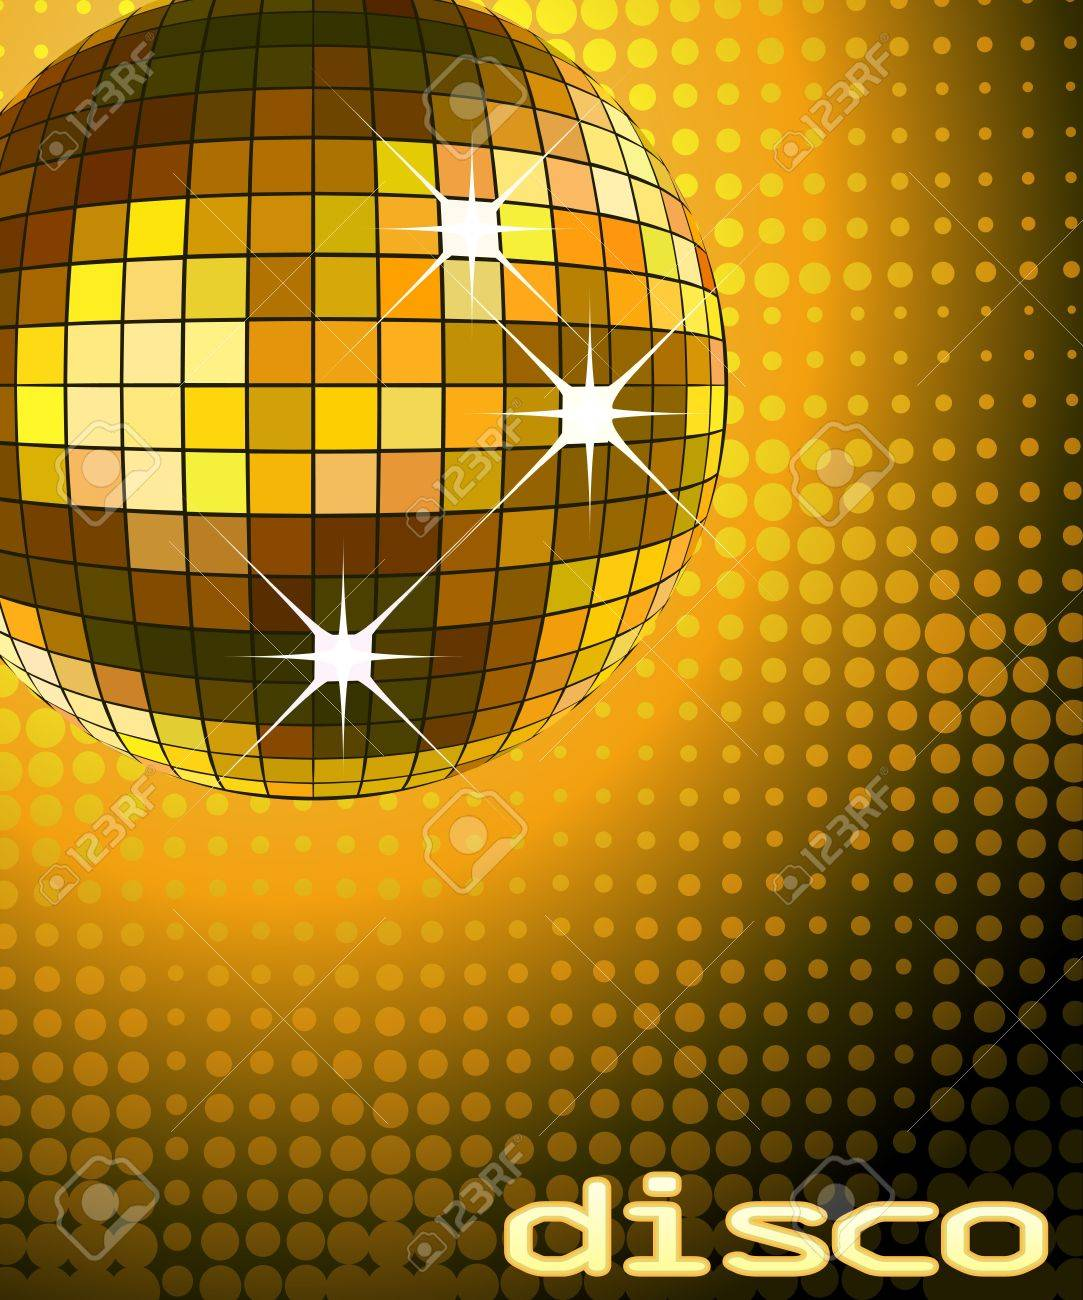 retro party background with disco ball, illustration Stock Illustration - 3334929